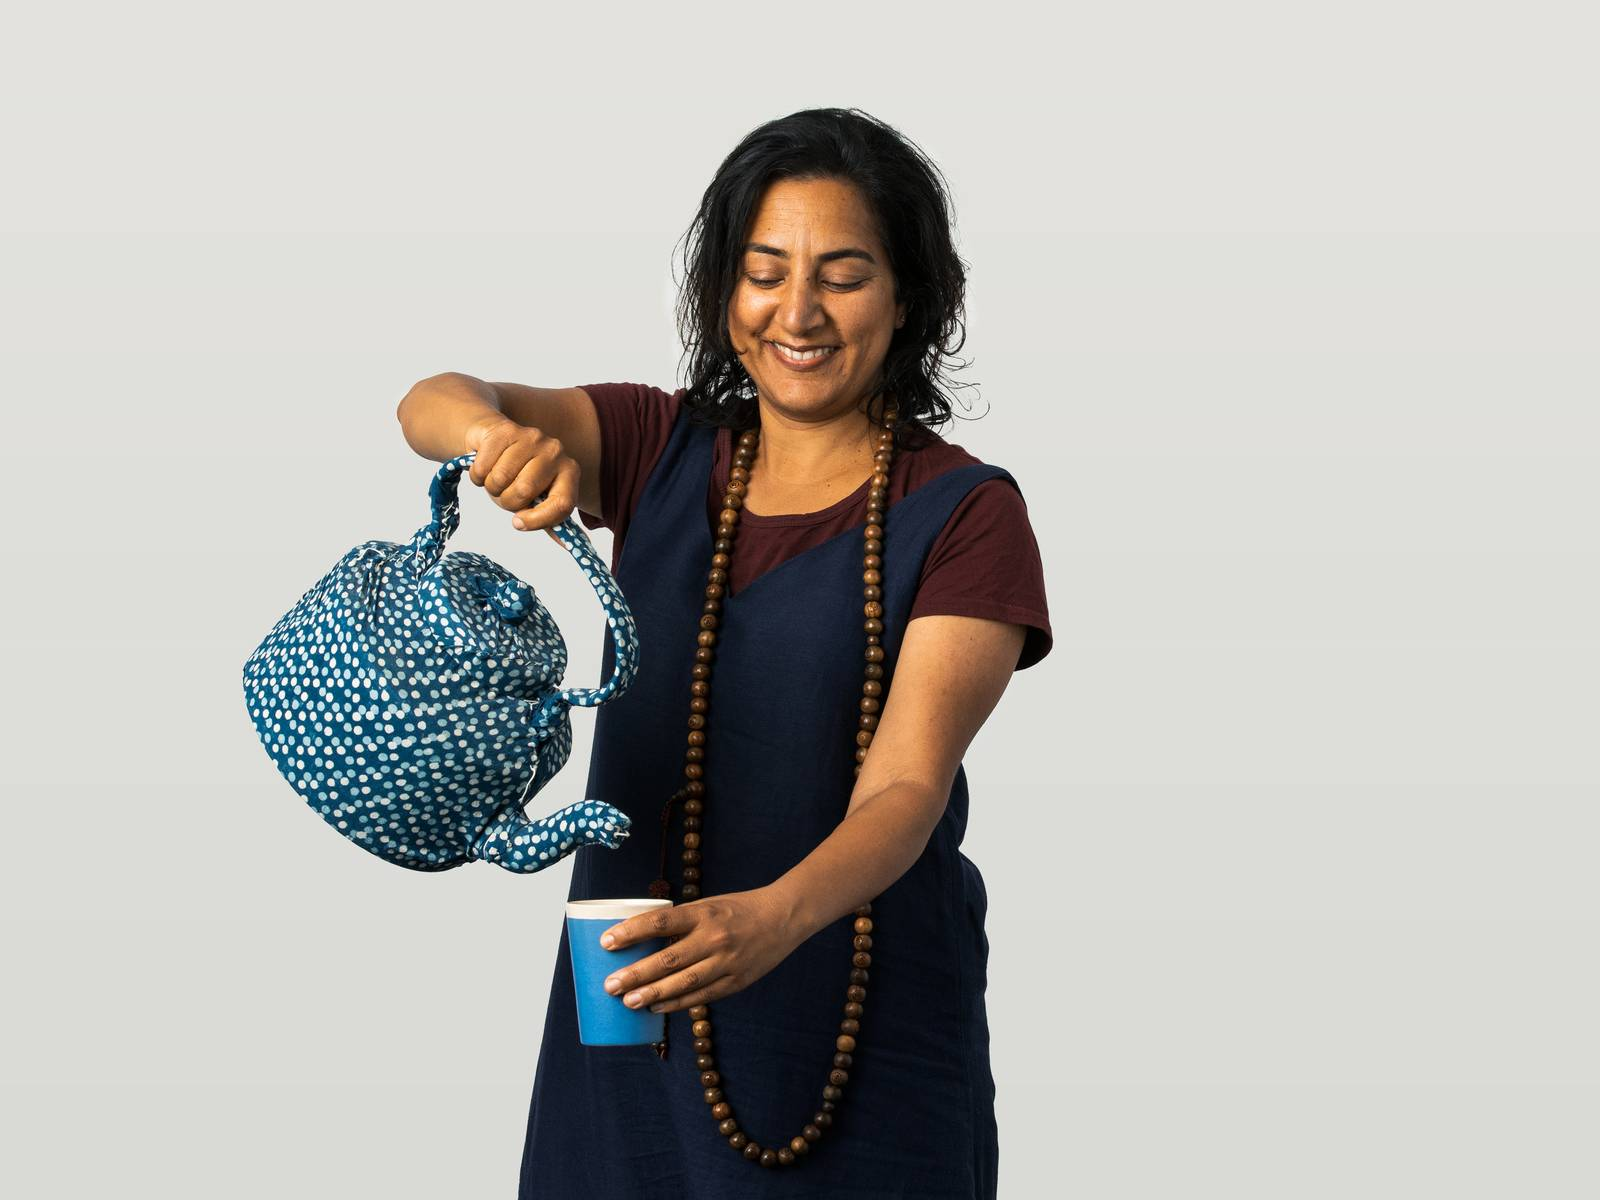 Meena pouring a cup of tea